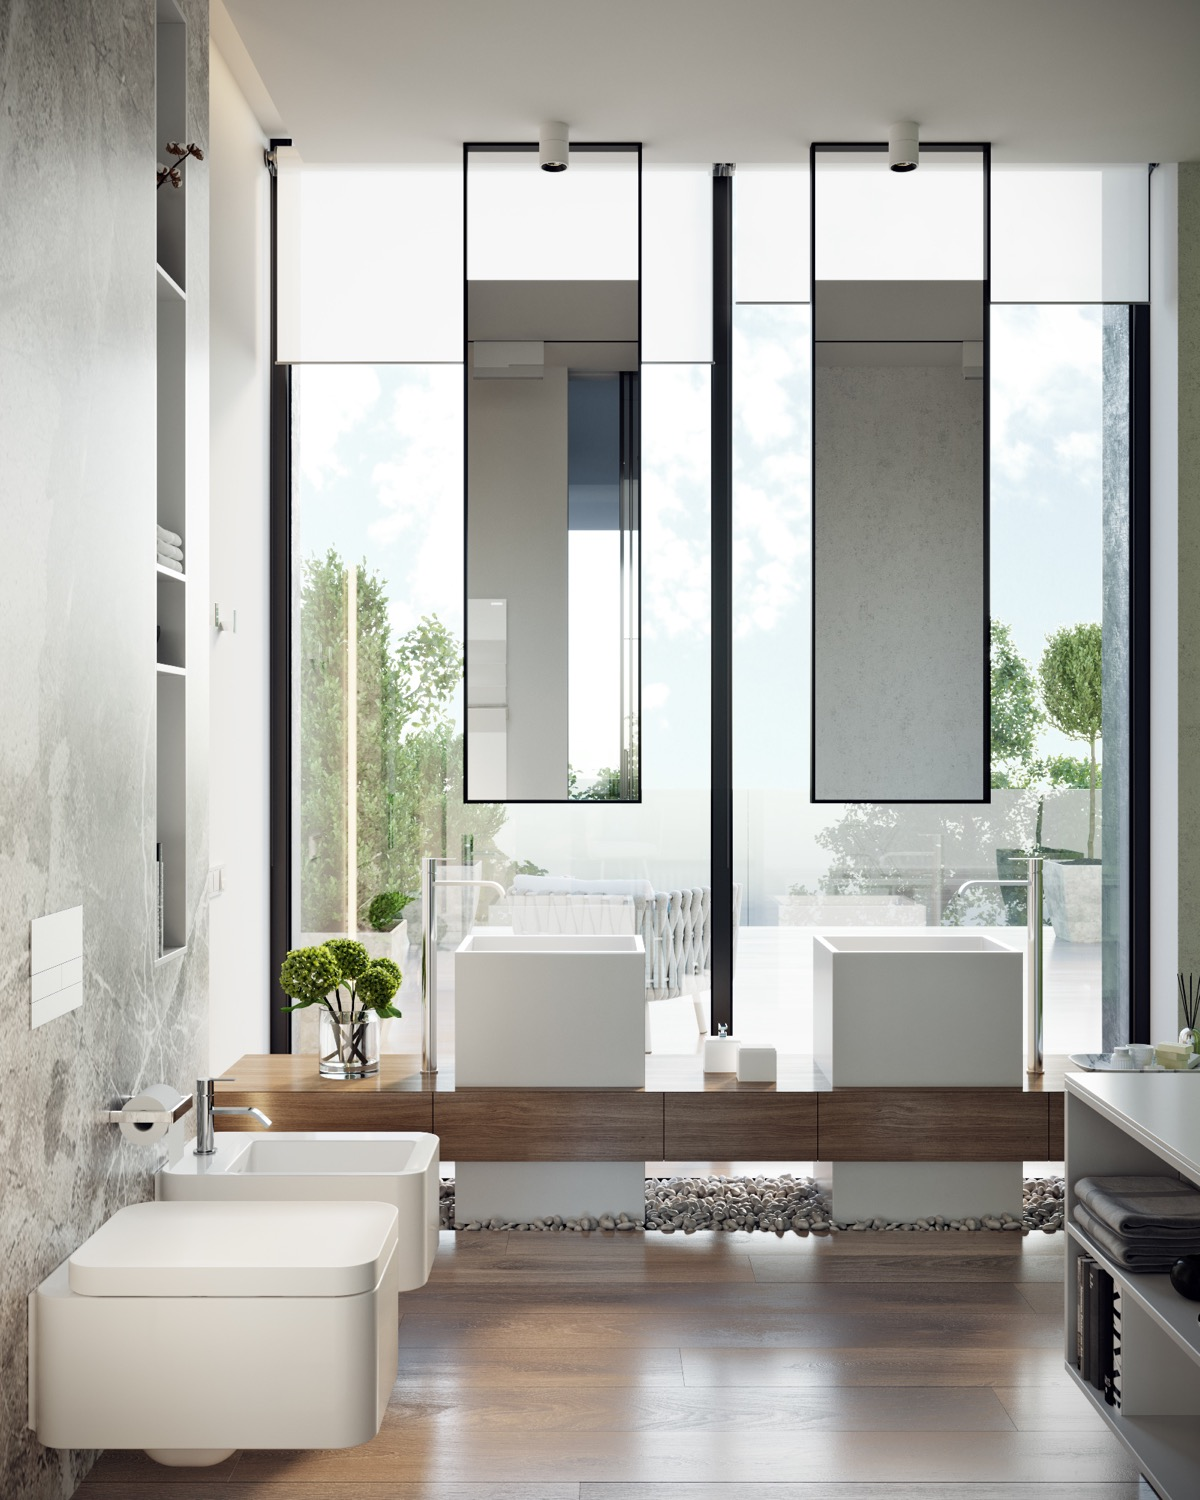 50 Luxury Bathrooms And Tips You Can Copy From Them images 6